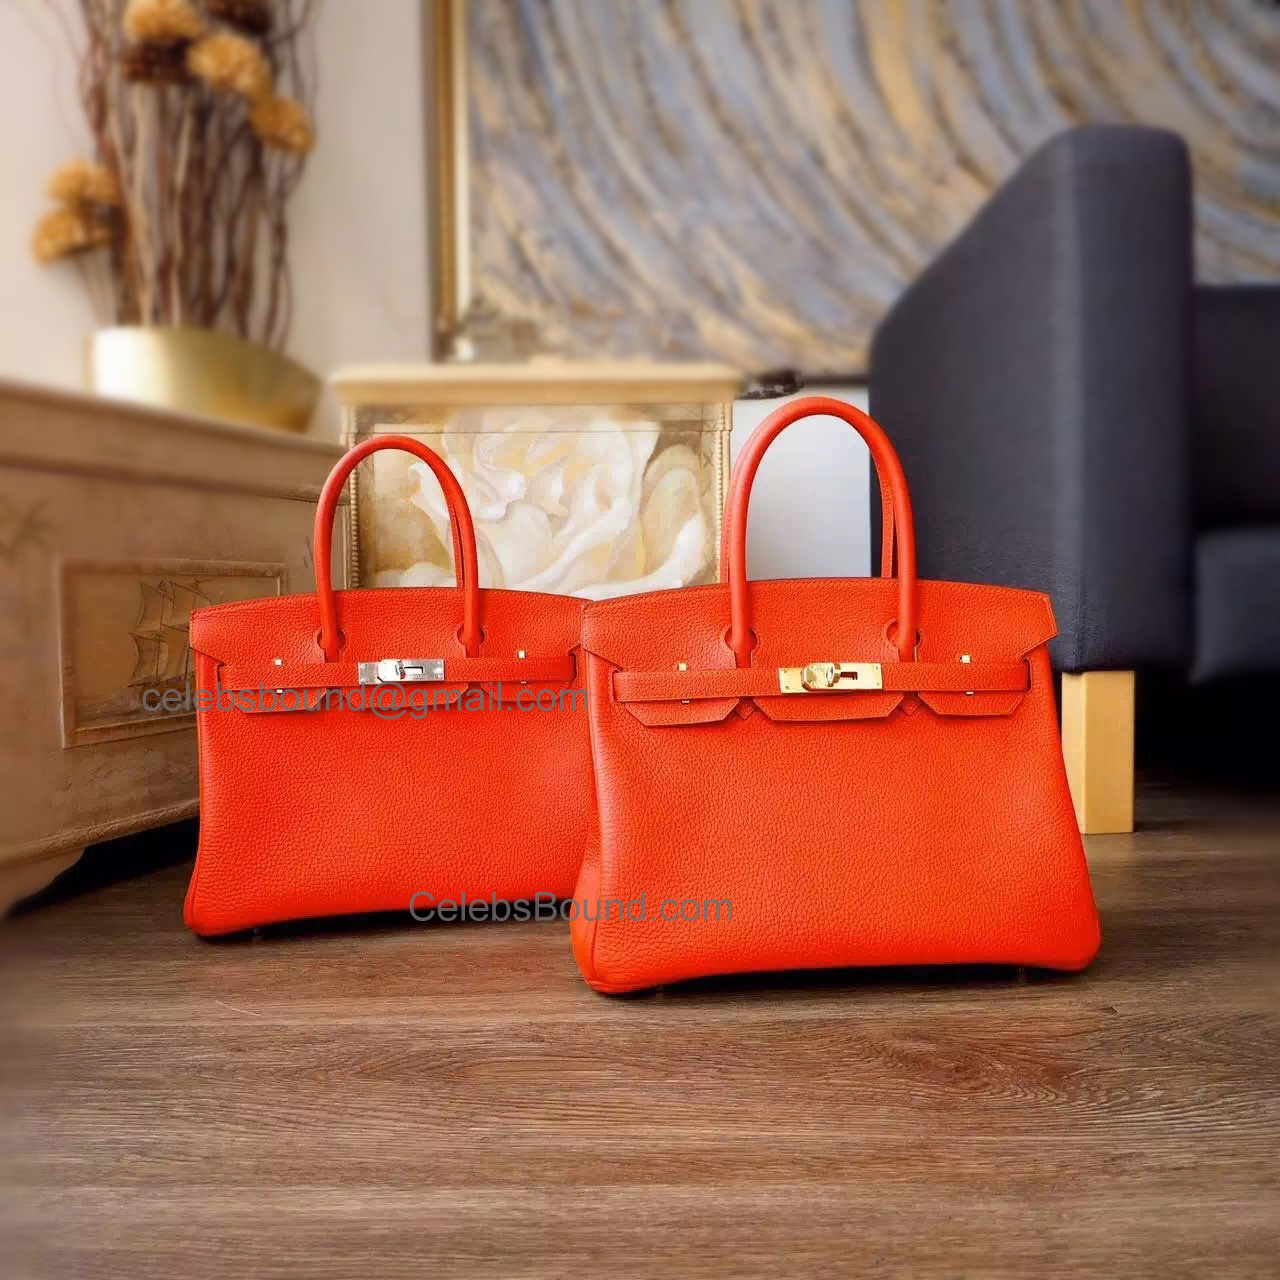 Hand Stitched Hermes Birkin 30 Bag in 8v Orange Poppy Togo Calfskin